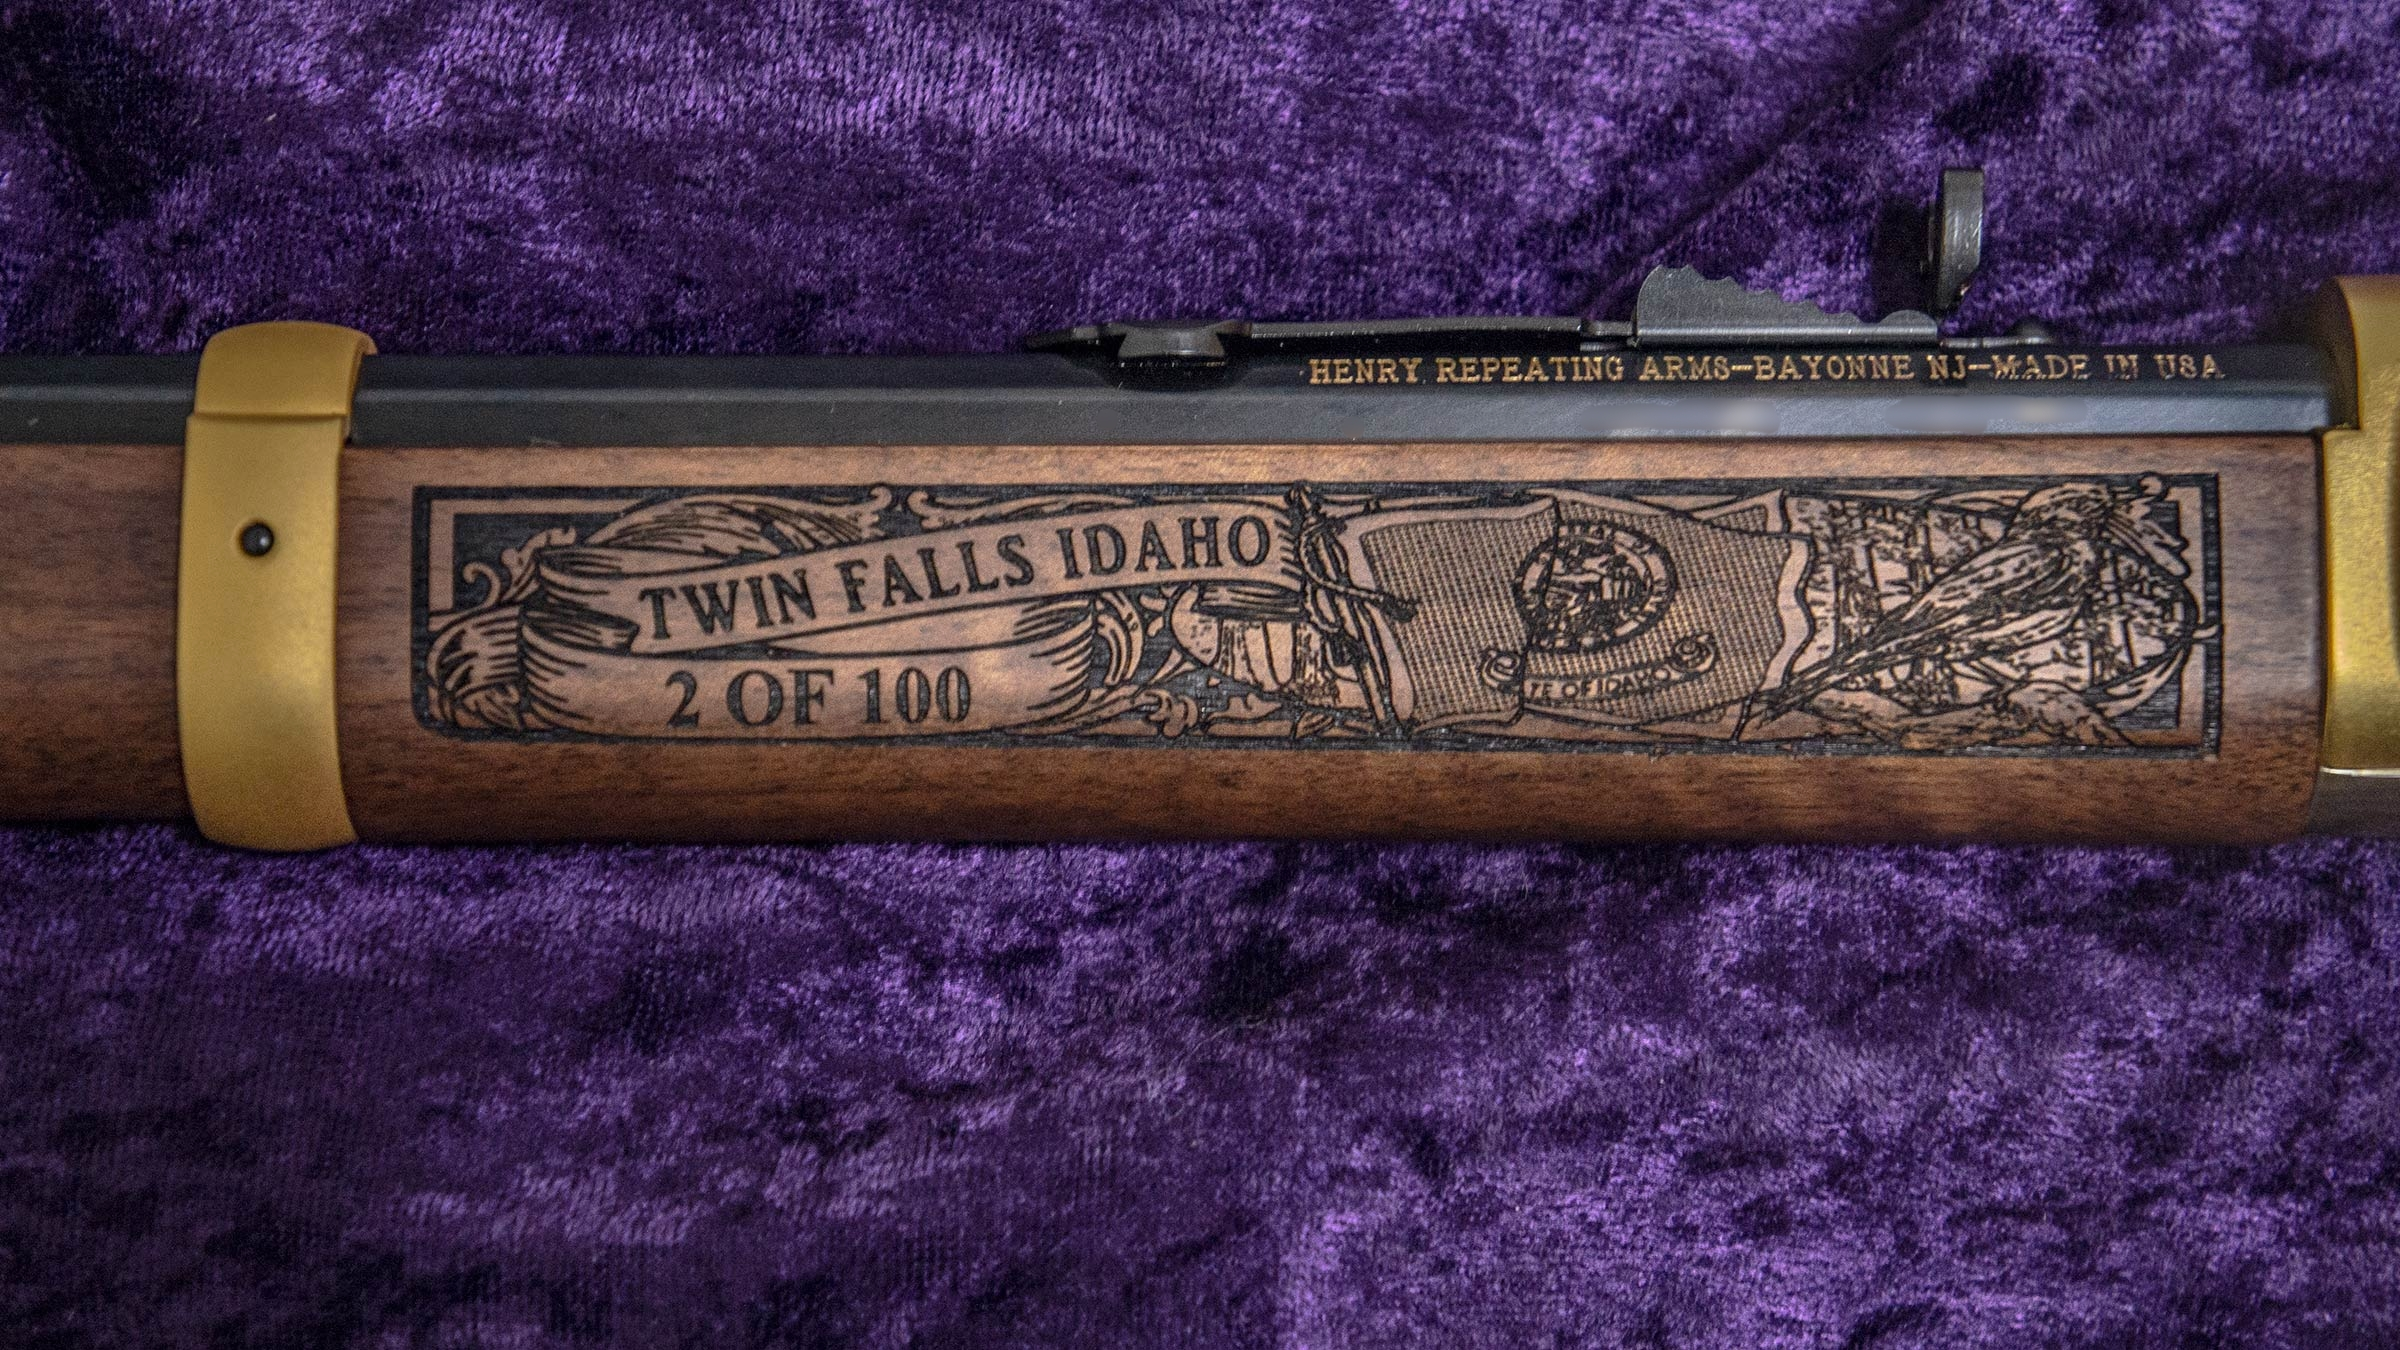 Your # of 100 engraved Left-side Forearm